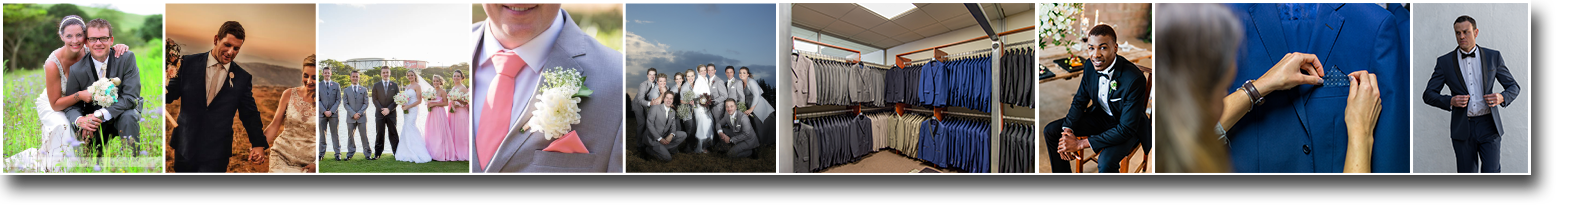 wedding and suit hire banner